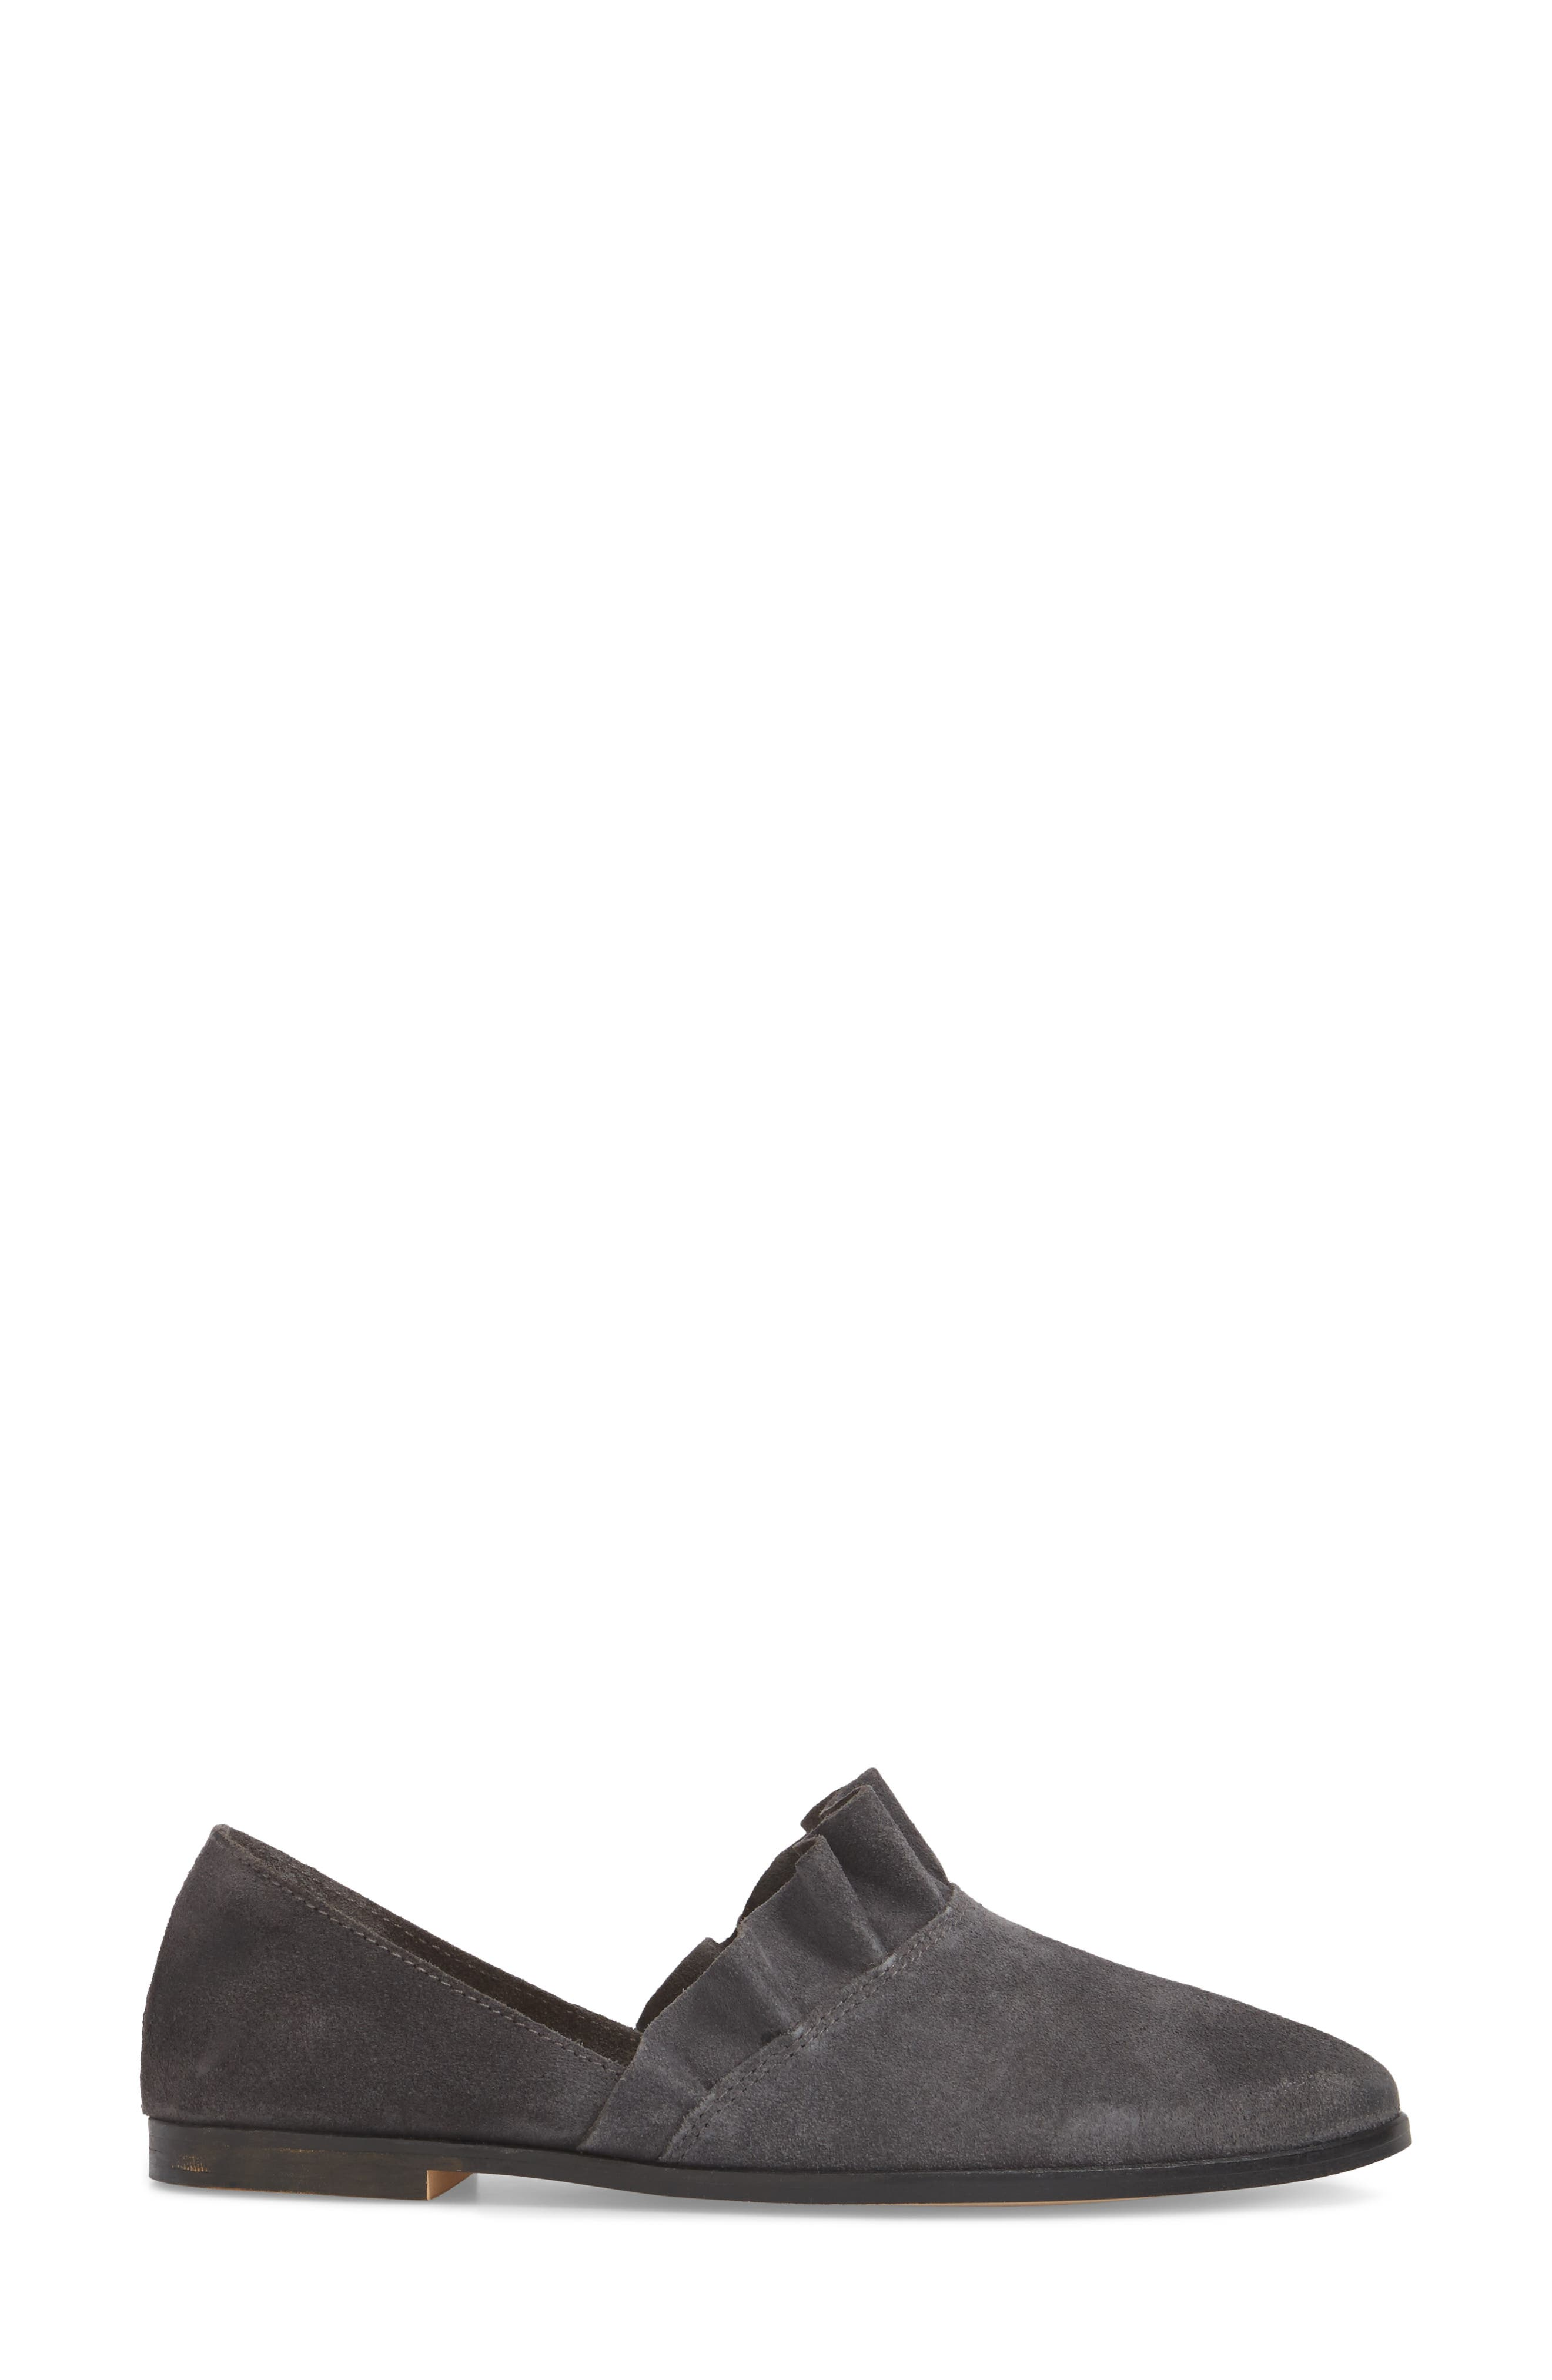 Gabbie Ruffle d'Orsay Flat,                             Alternate thumbnail 3, color,                             Ink Suede